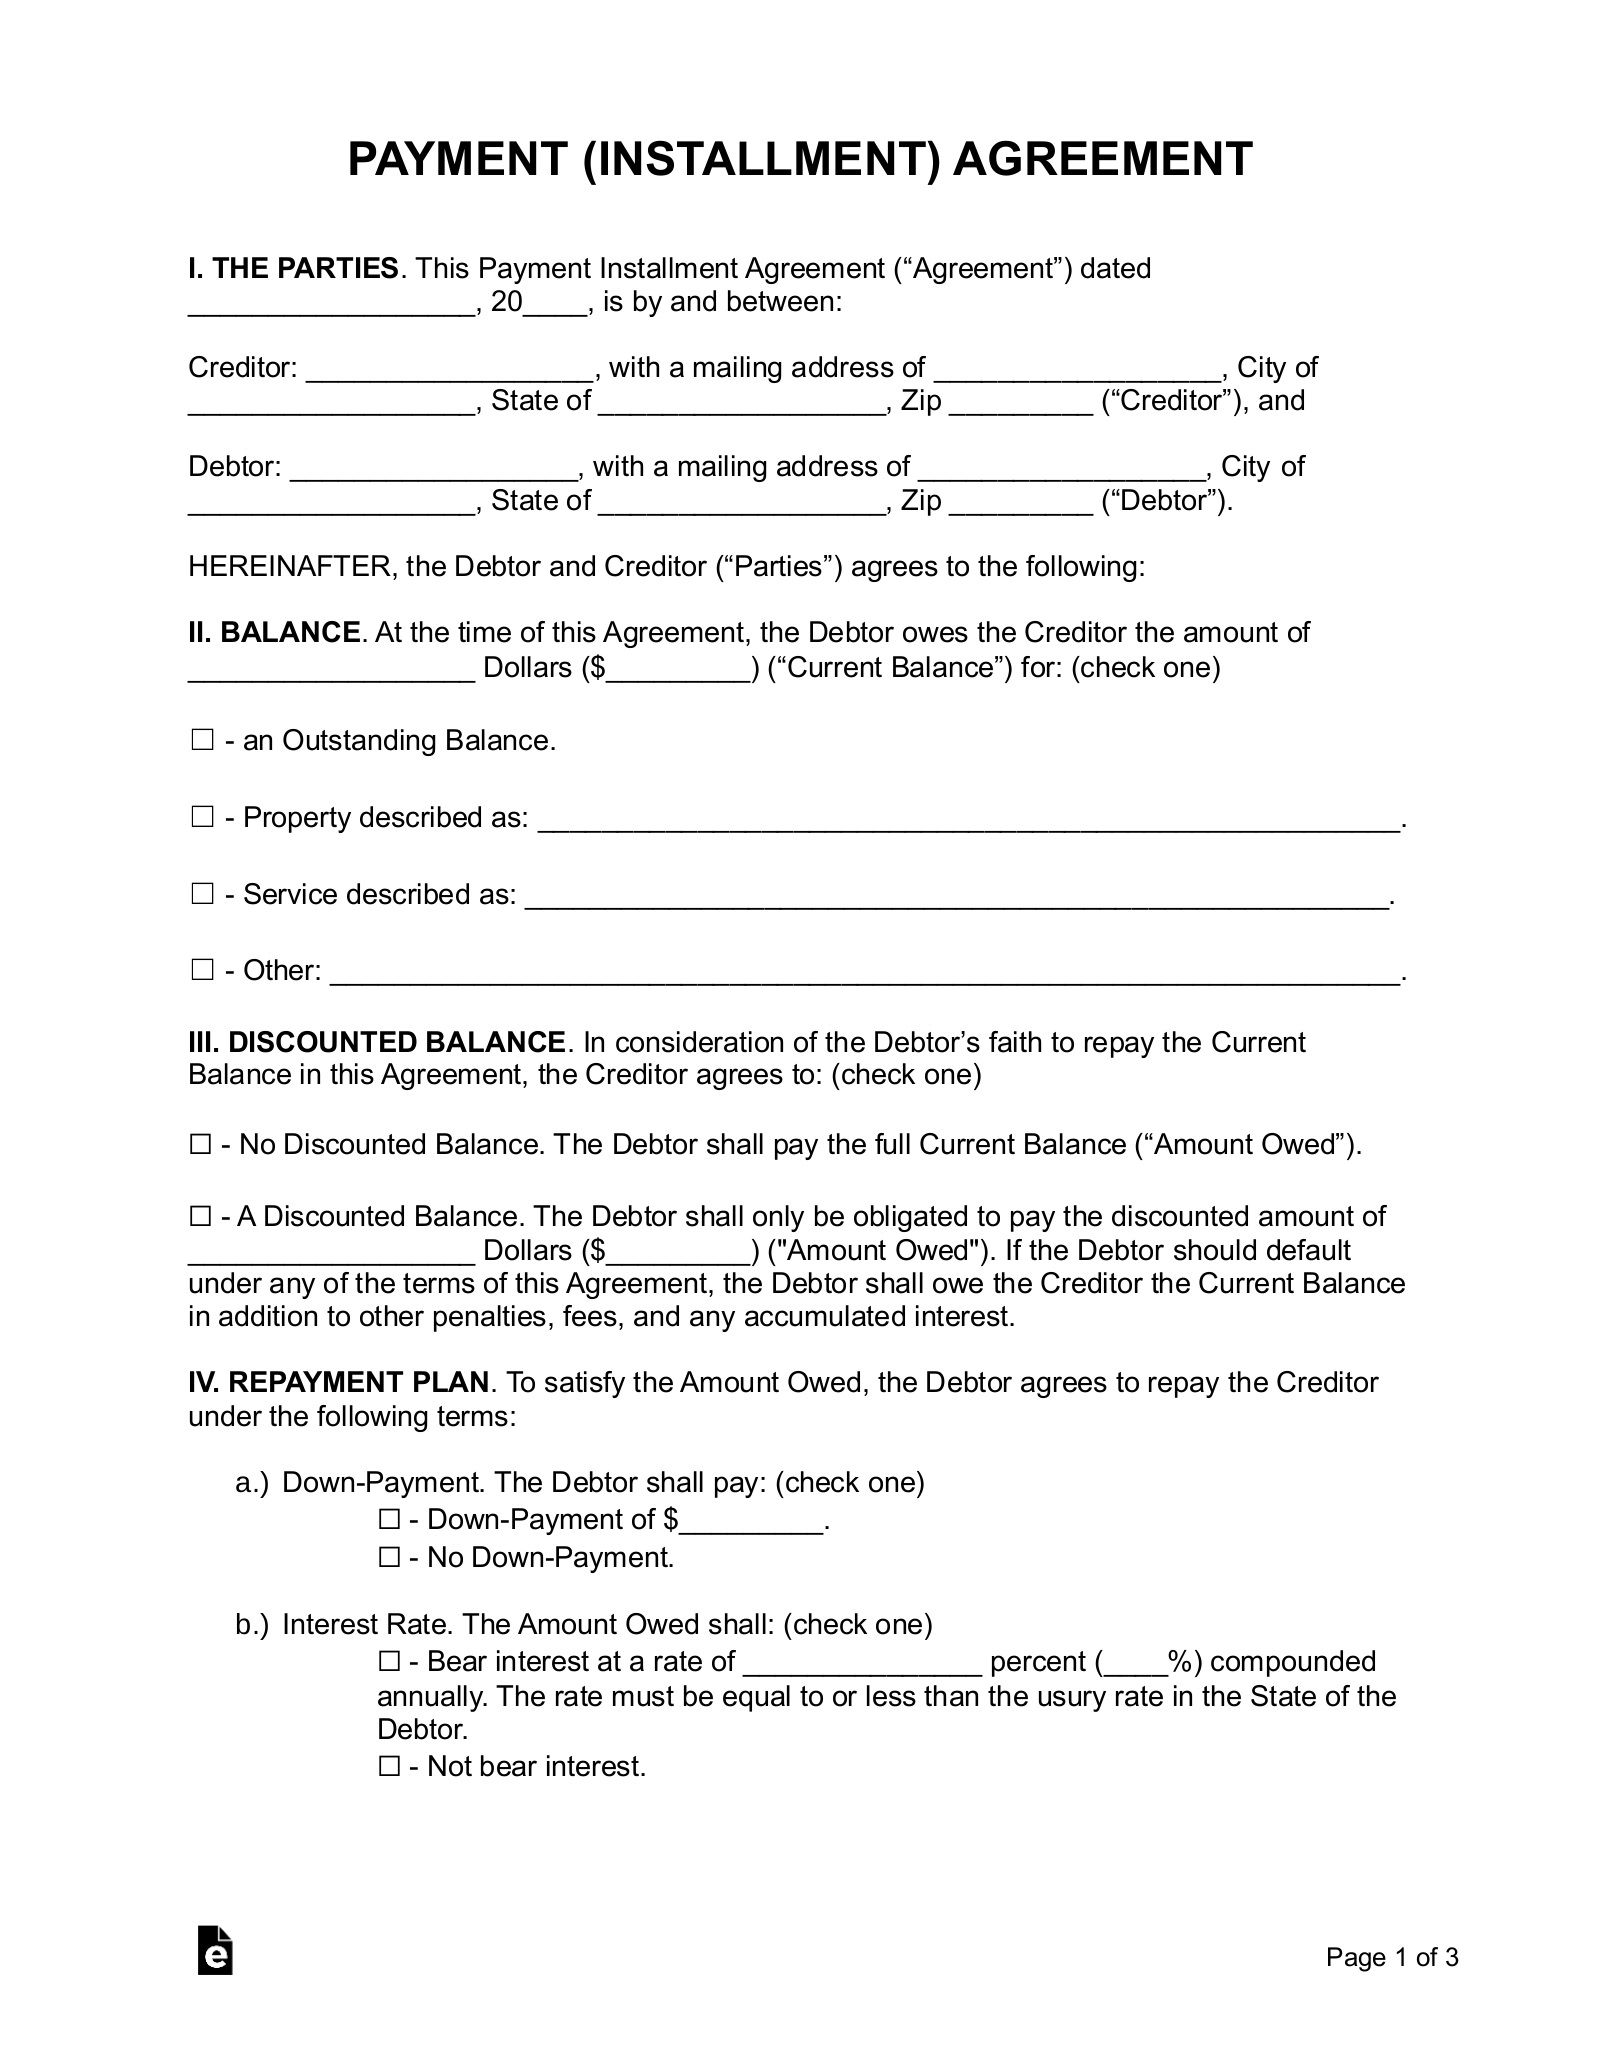 008 Archaicawful Installment Payment Contract Template High Definition  Agreement Free Car WordFull